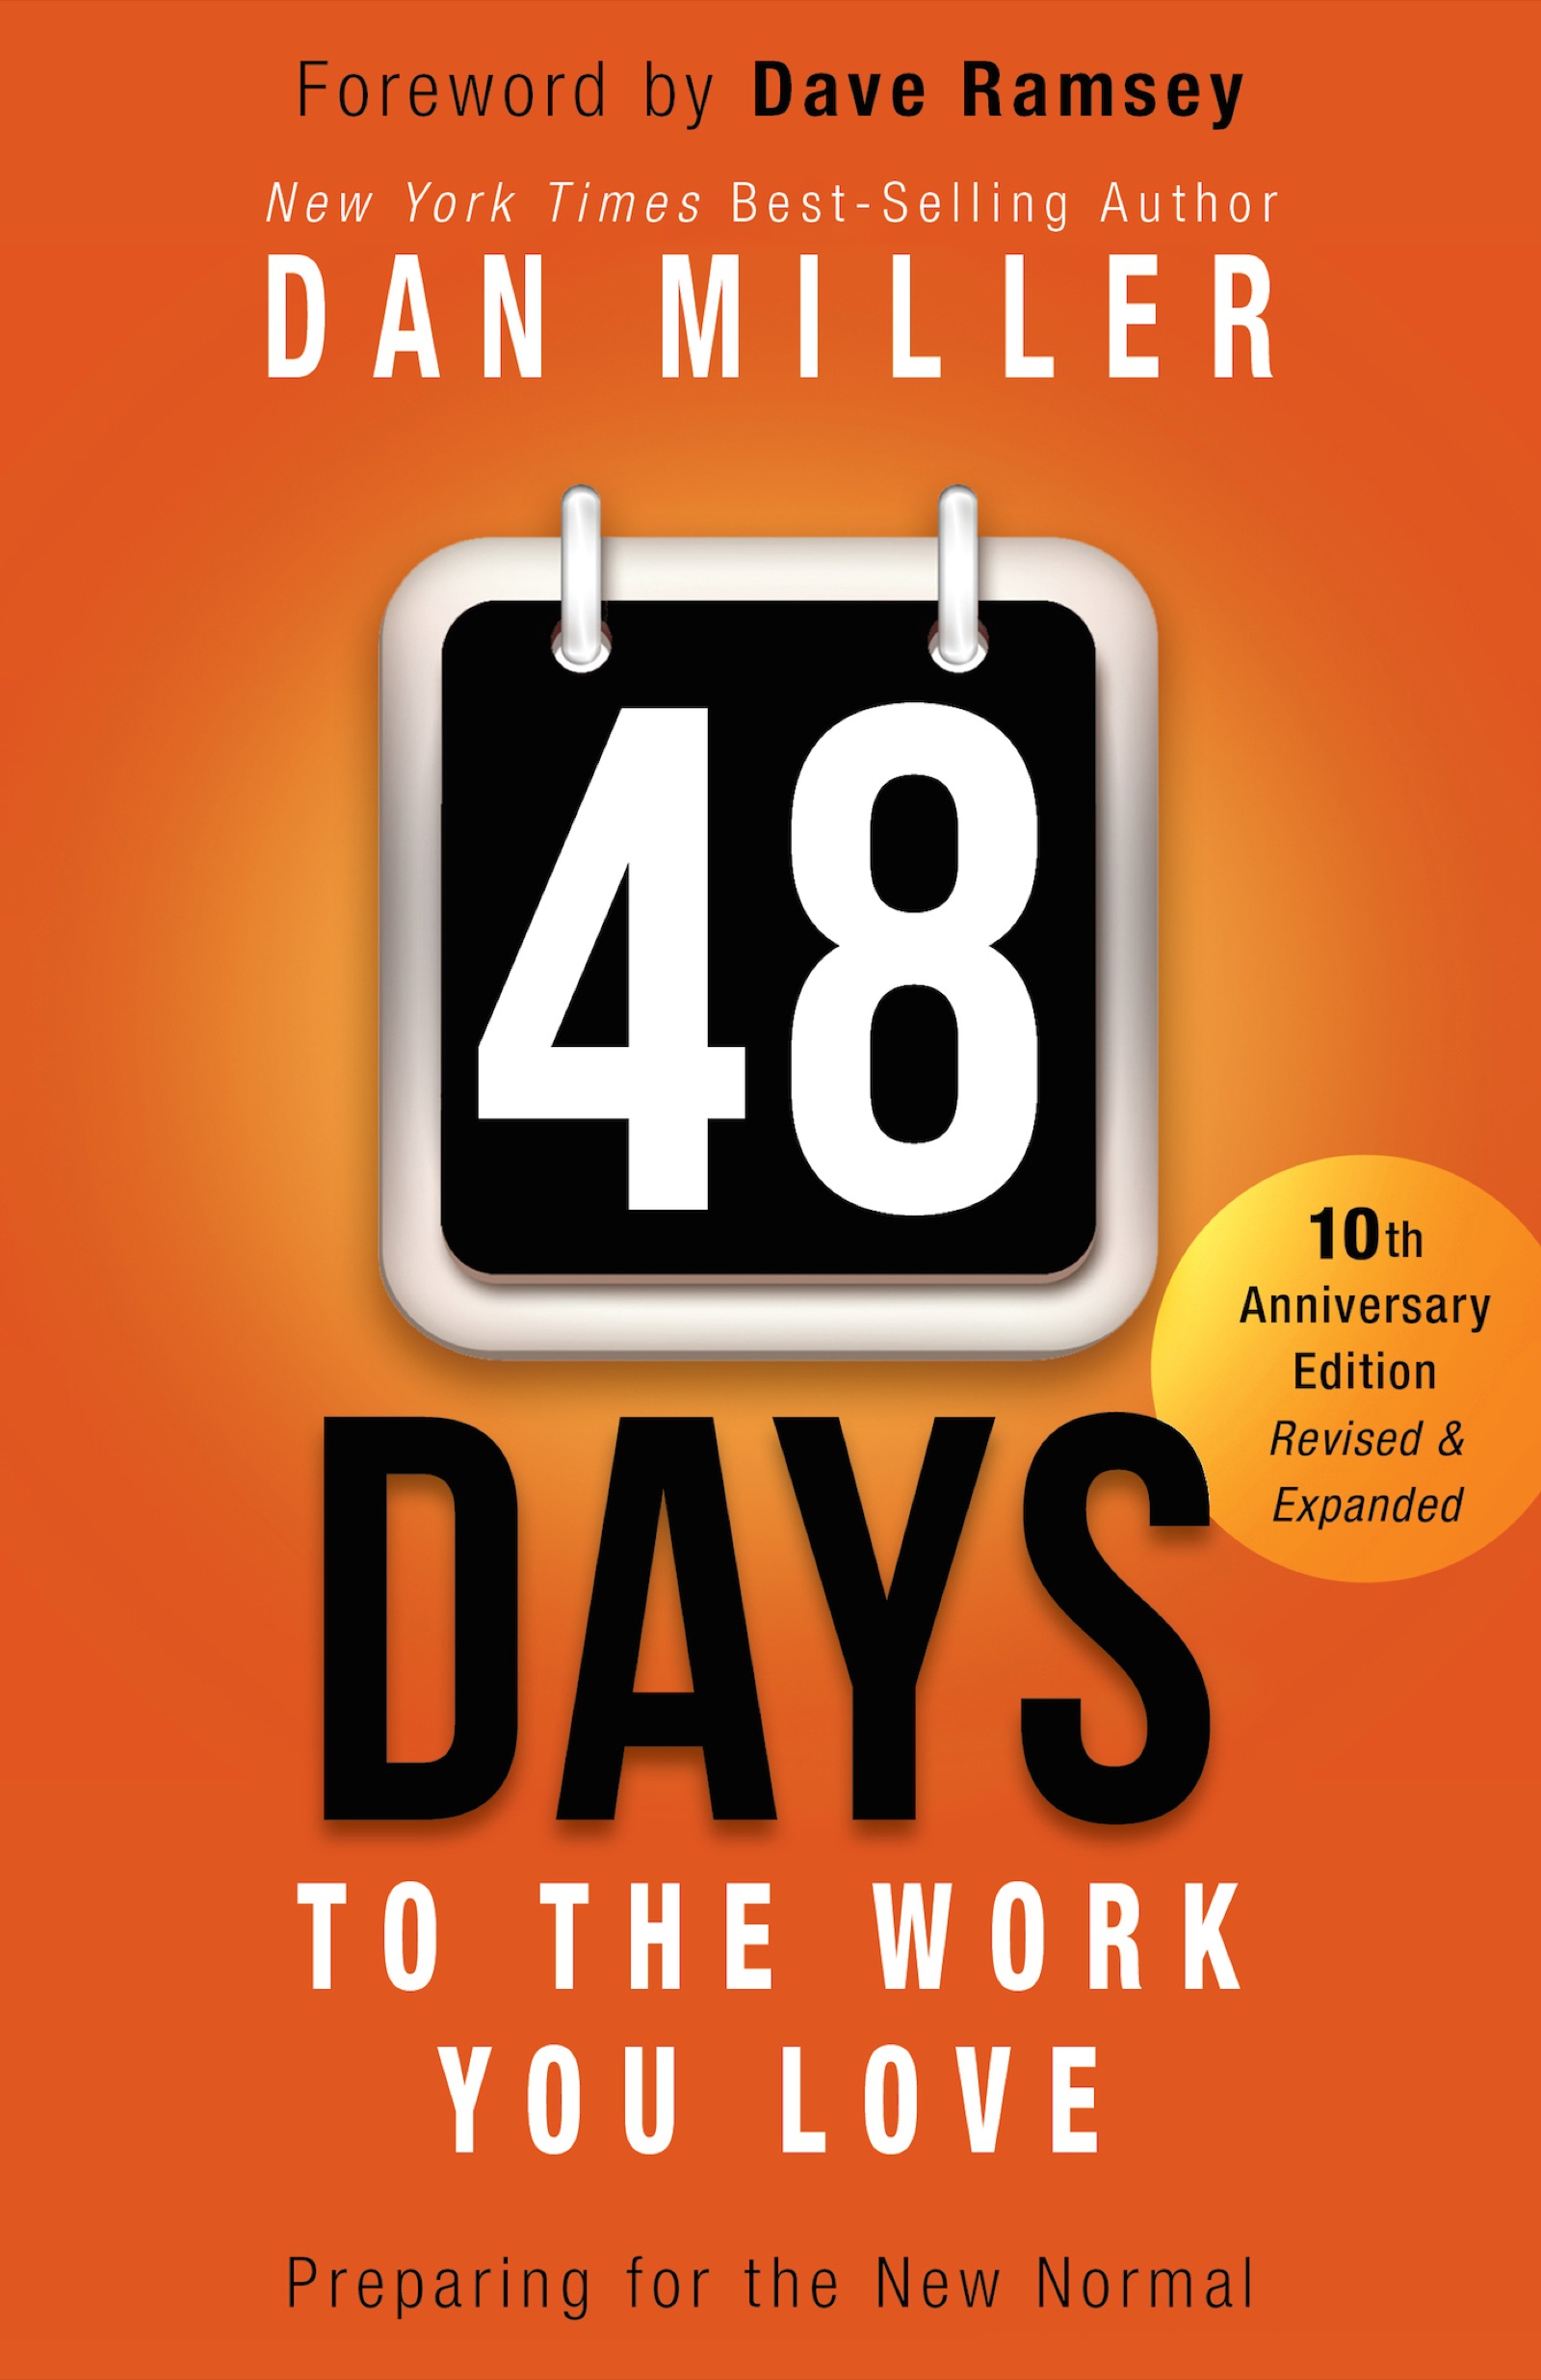 48 Days to the Work You Love Preparing for the New Normal